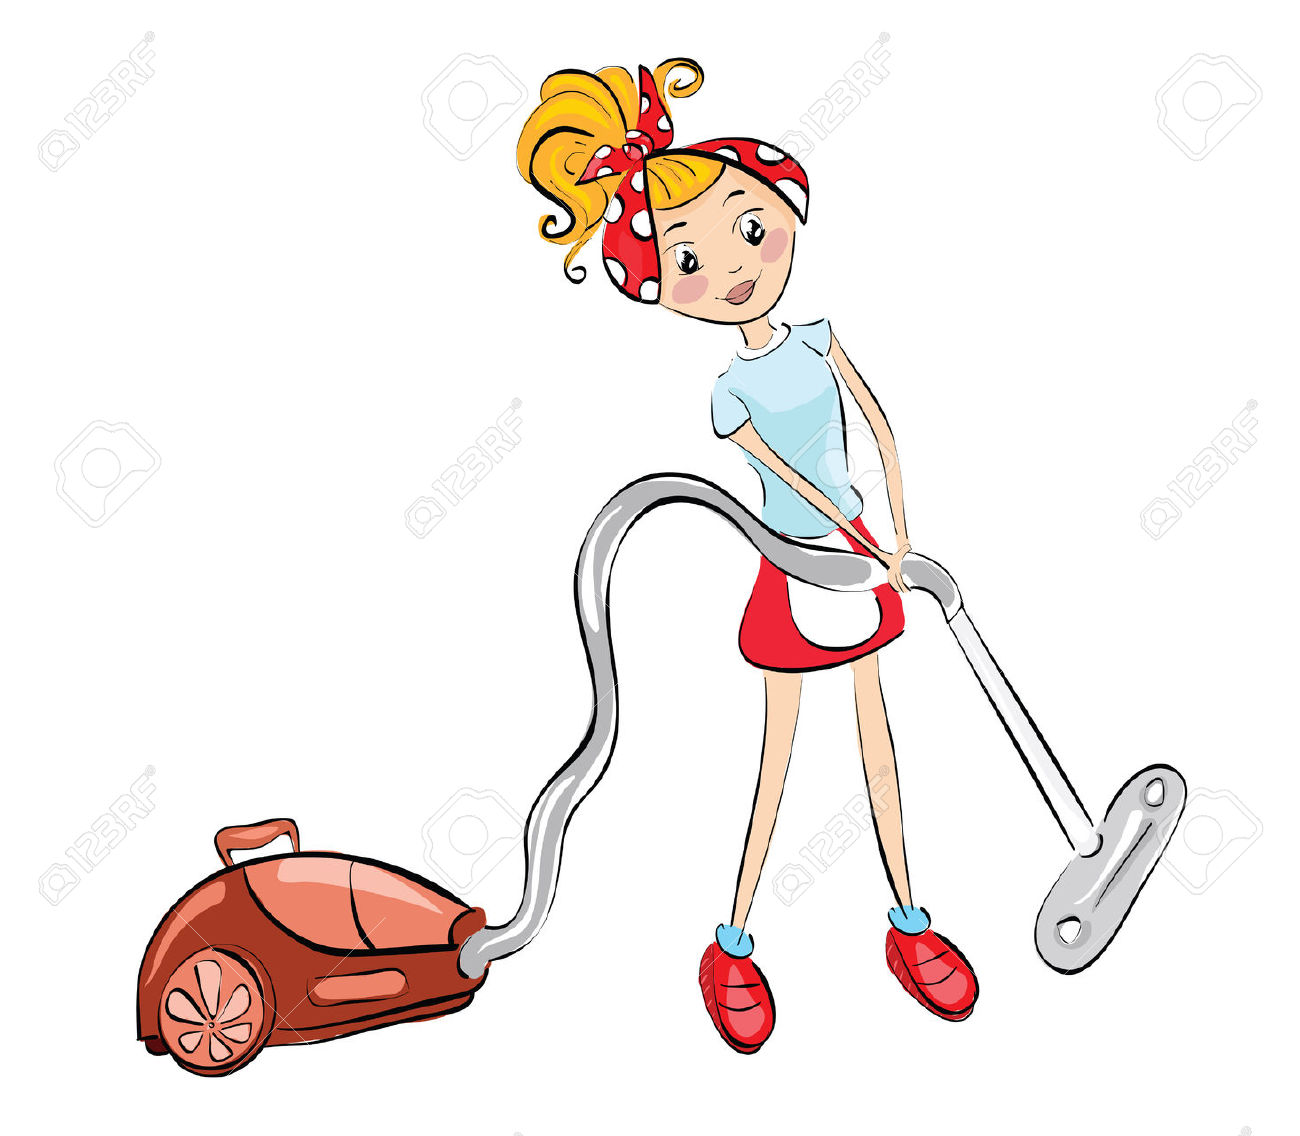 jpg transparent library Cartoon cleaner free download. Kid vacuum clipart